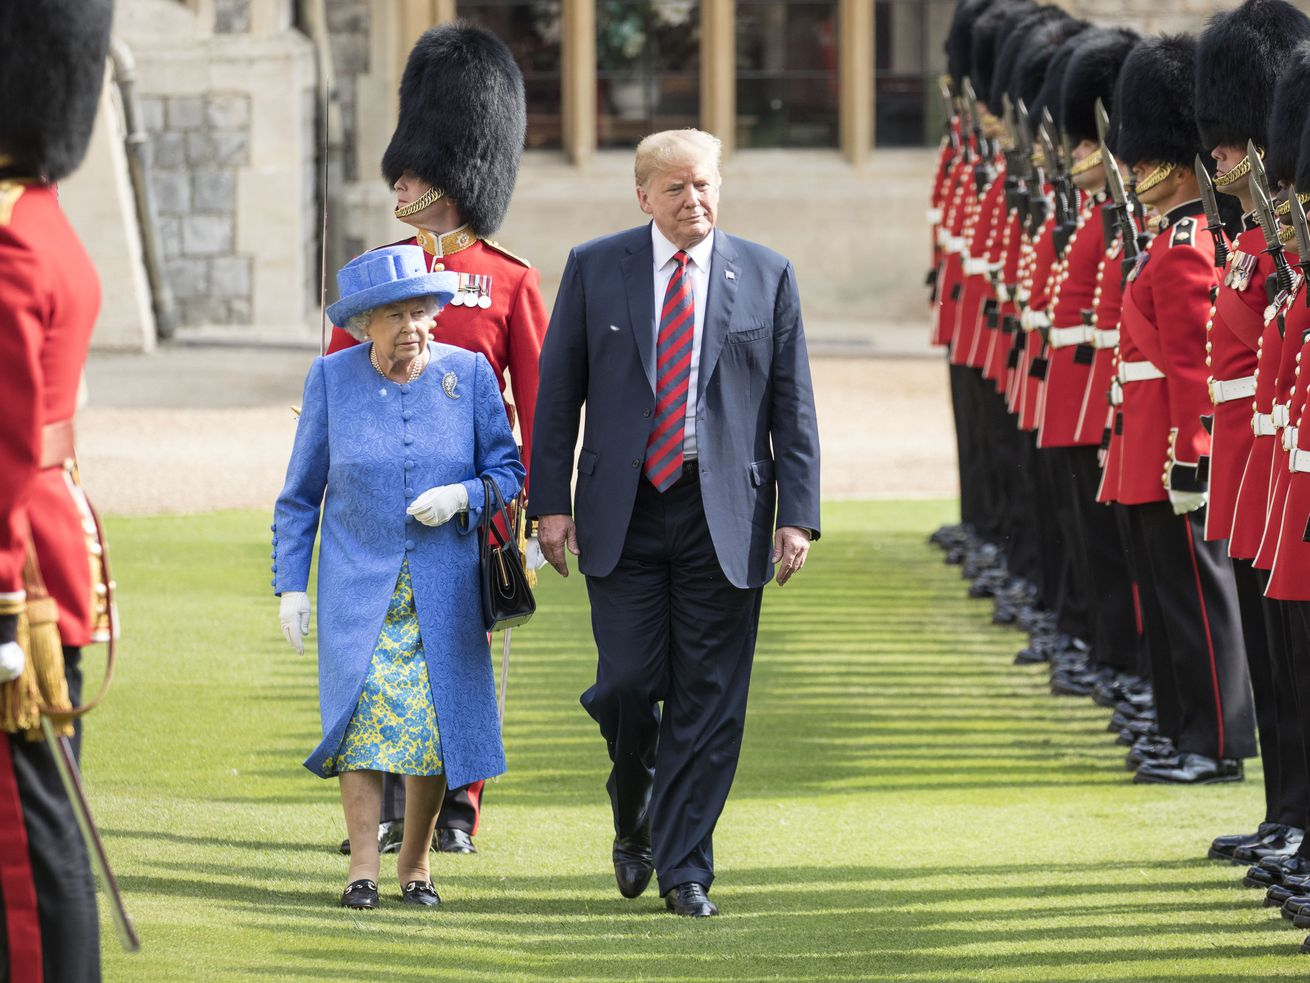 President Trump met with the Queen in England on his trip last year, in July 2018.